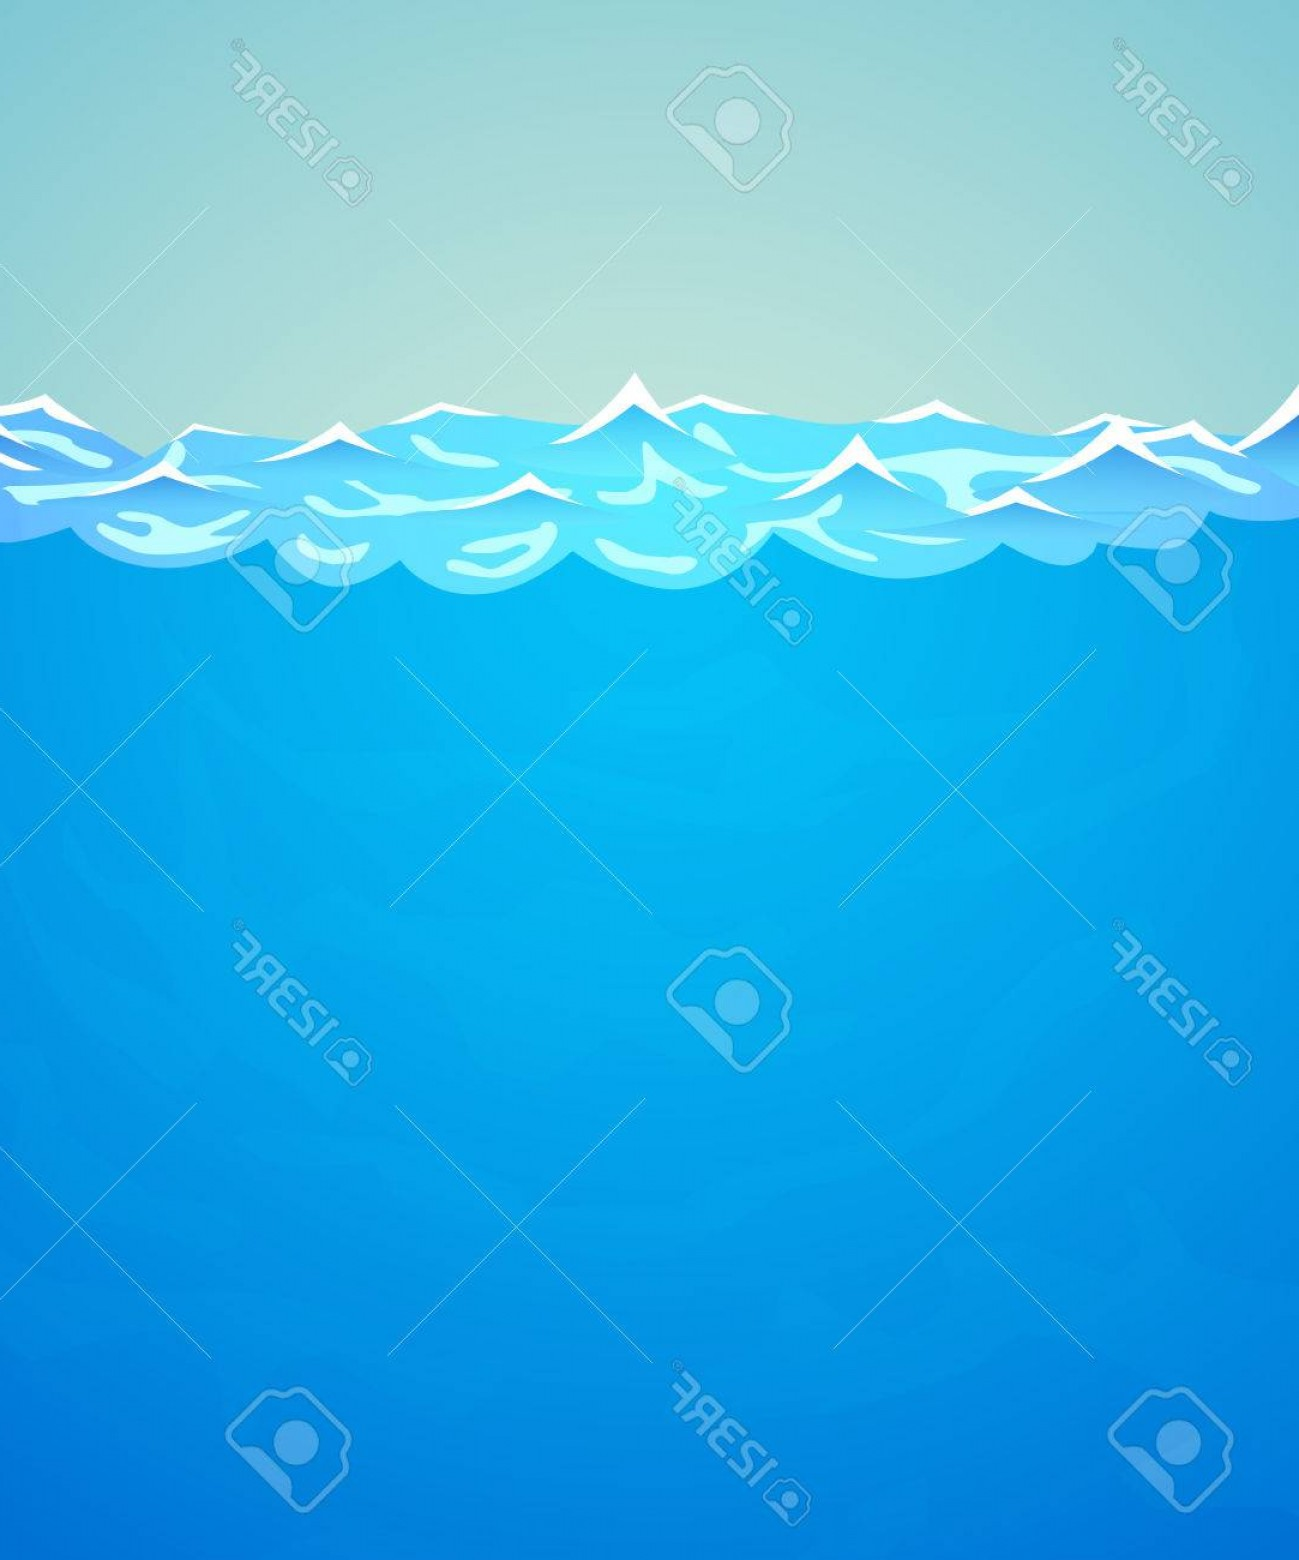 Ocean Water Clip Art Vector: Photostock Vector Underwater Vector Background Sea Or Ocean Water And Waves